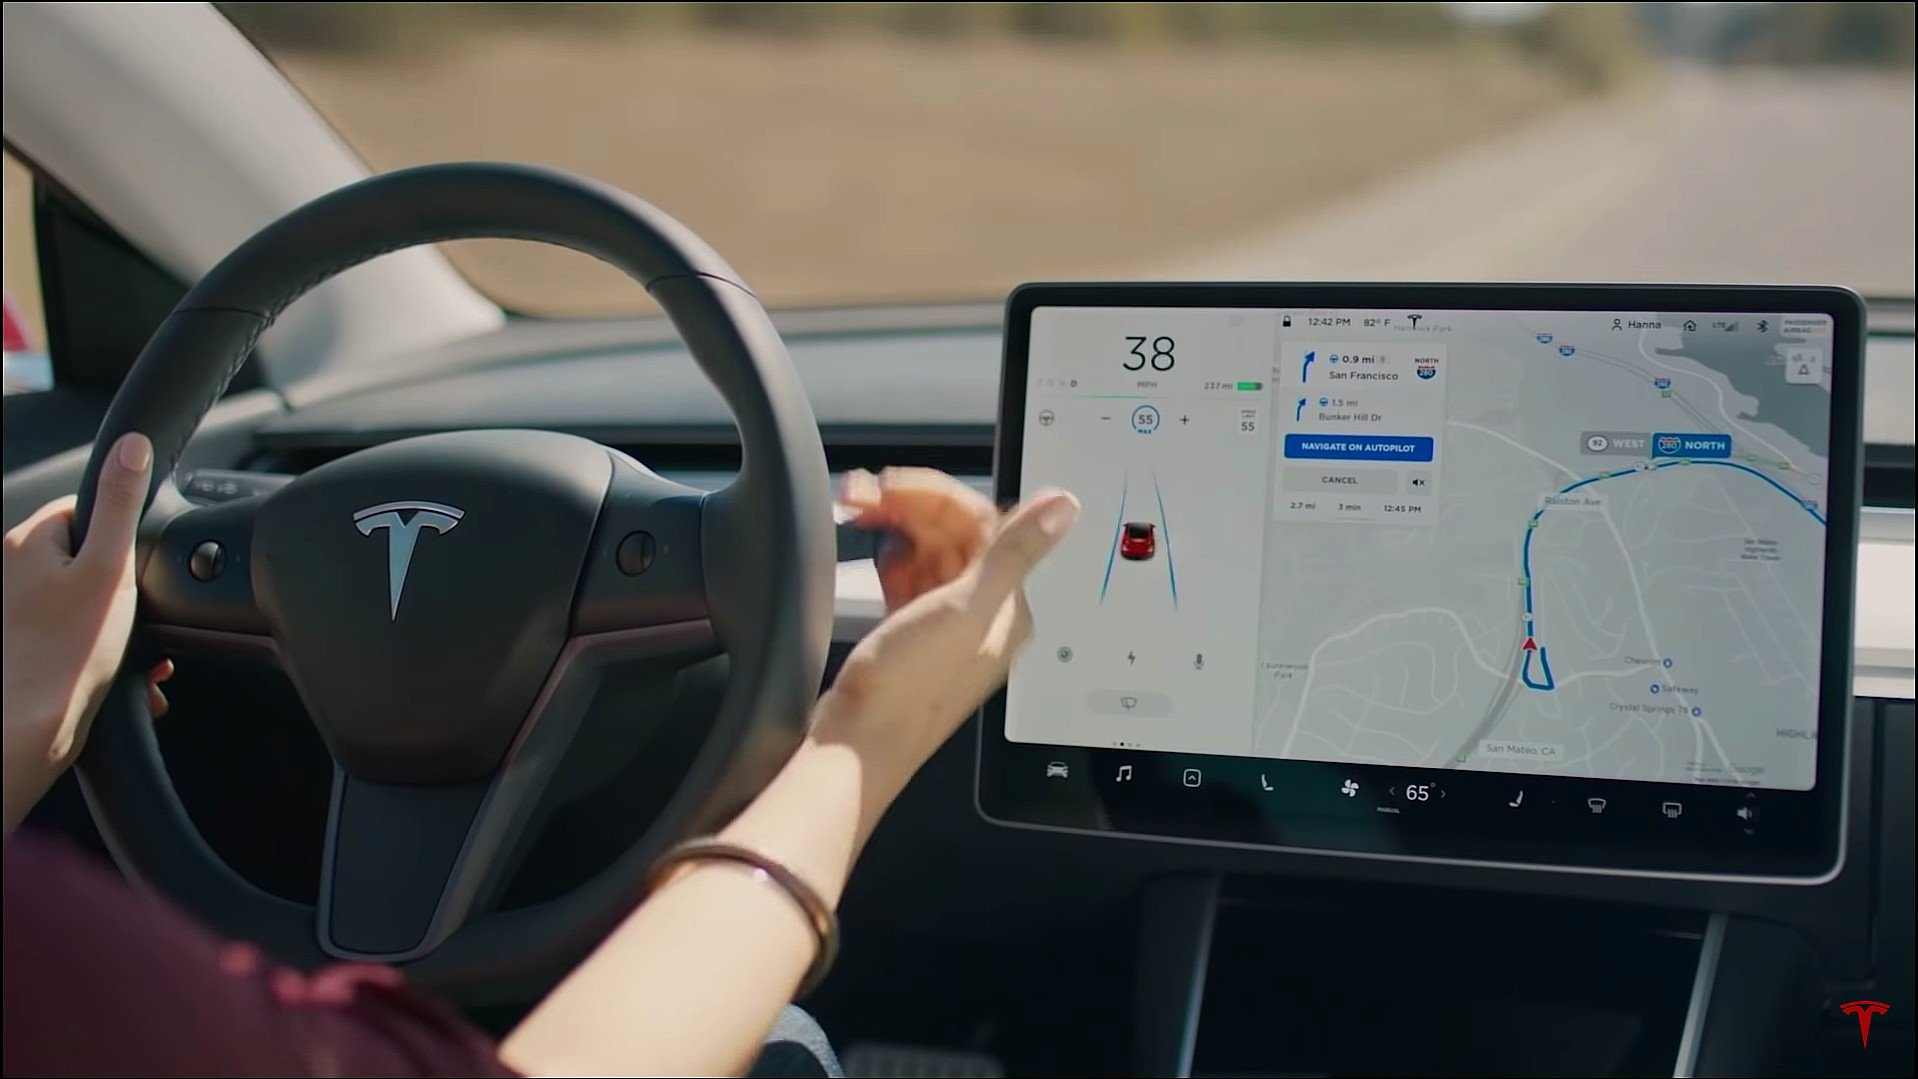 The latest is that Tesla will offer the feature as a subscription in early 2021. Brandon M. / YouTube